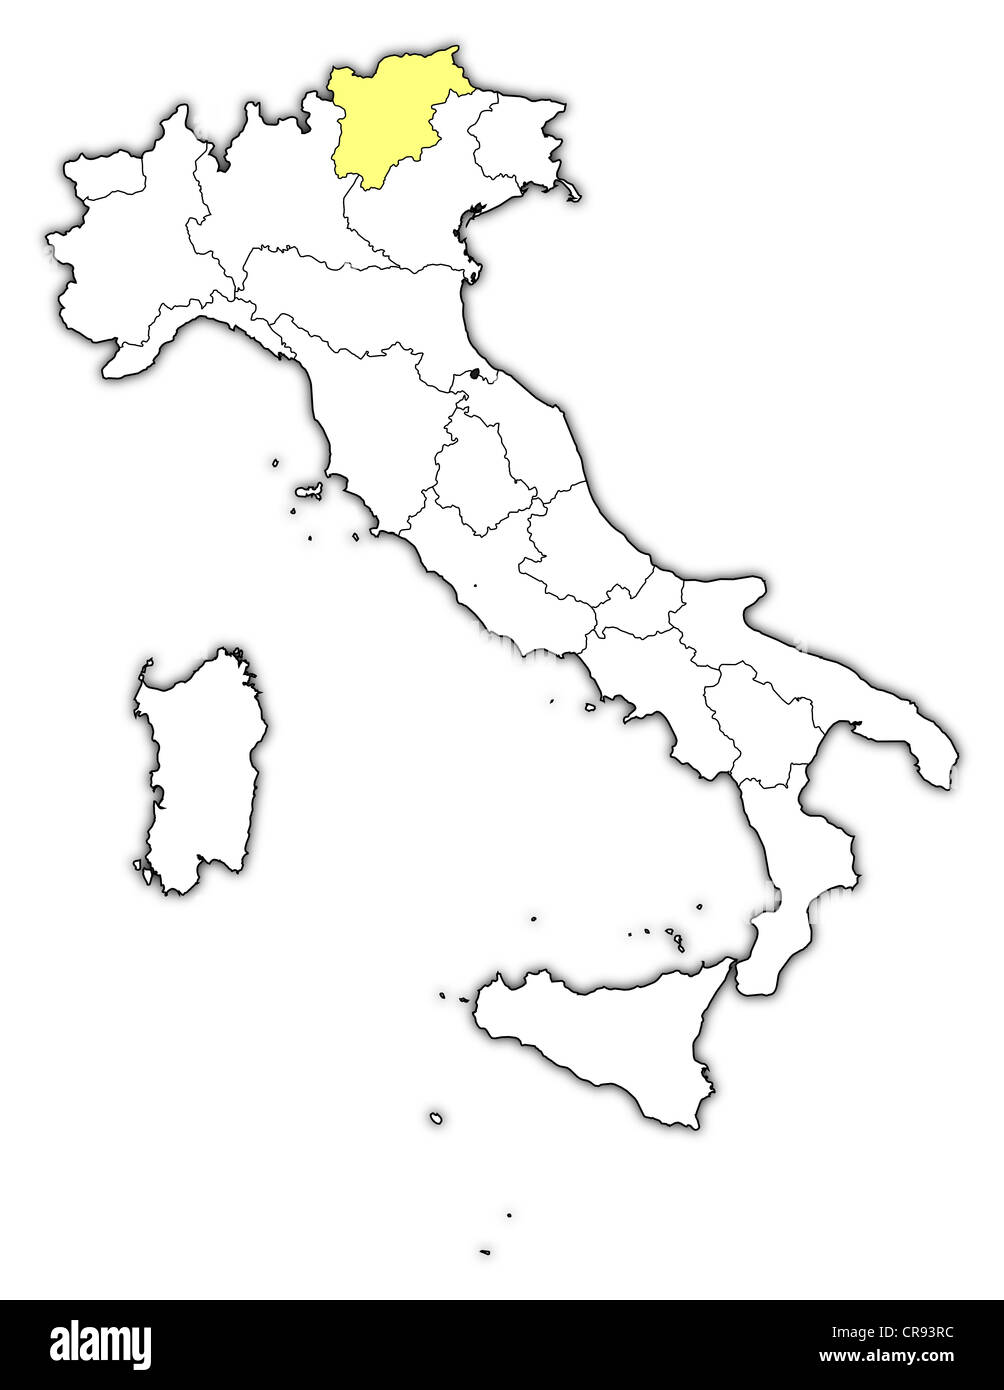 Political map of Italy with the several regions where TrentinoAlto